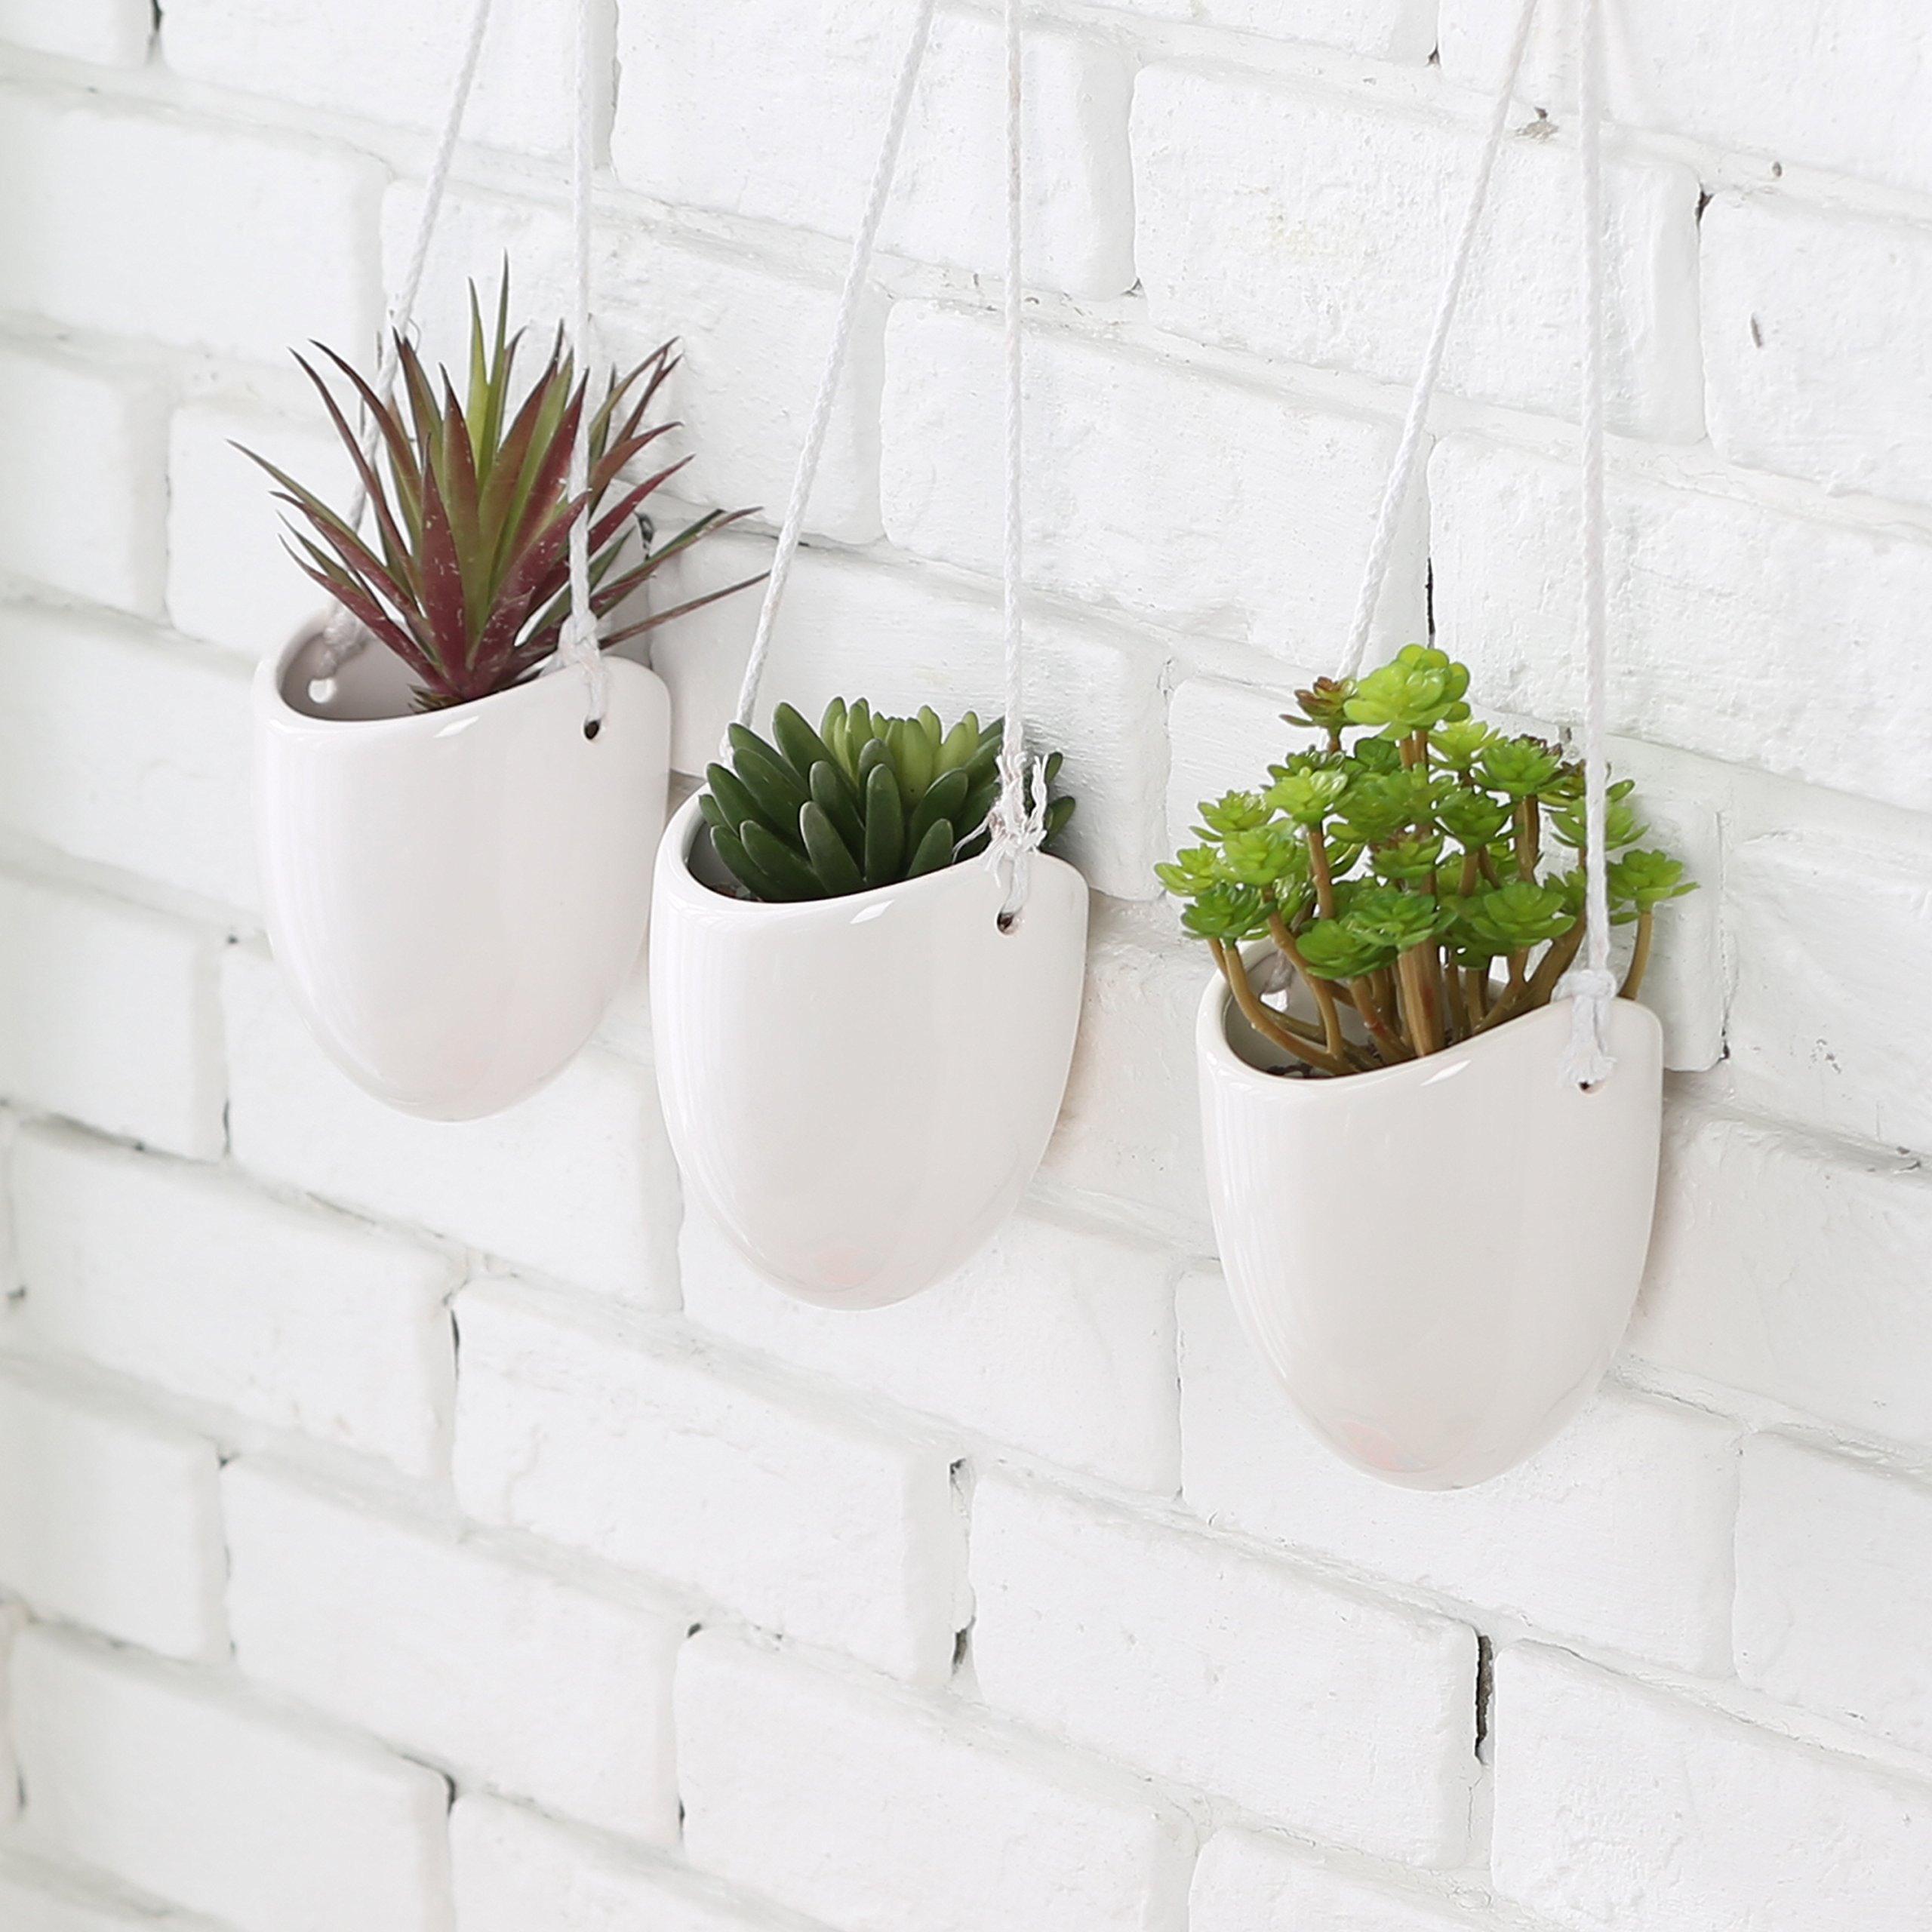 MyGift Modern Ceramic Hanging Planters, Succulent Plant Pots, Set of 3, White by MyGift